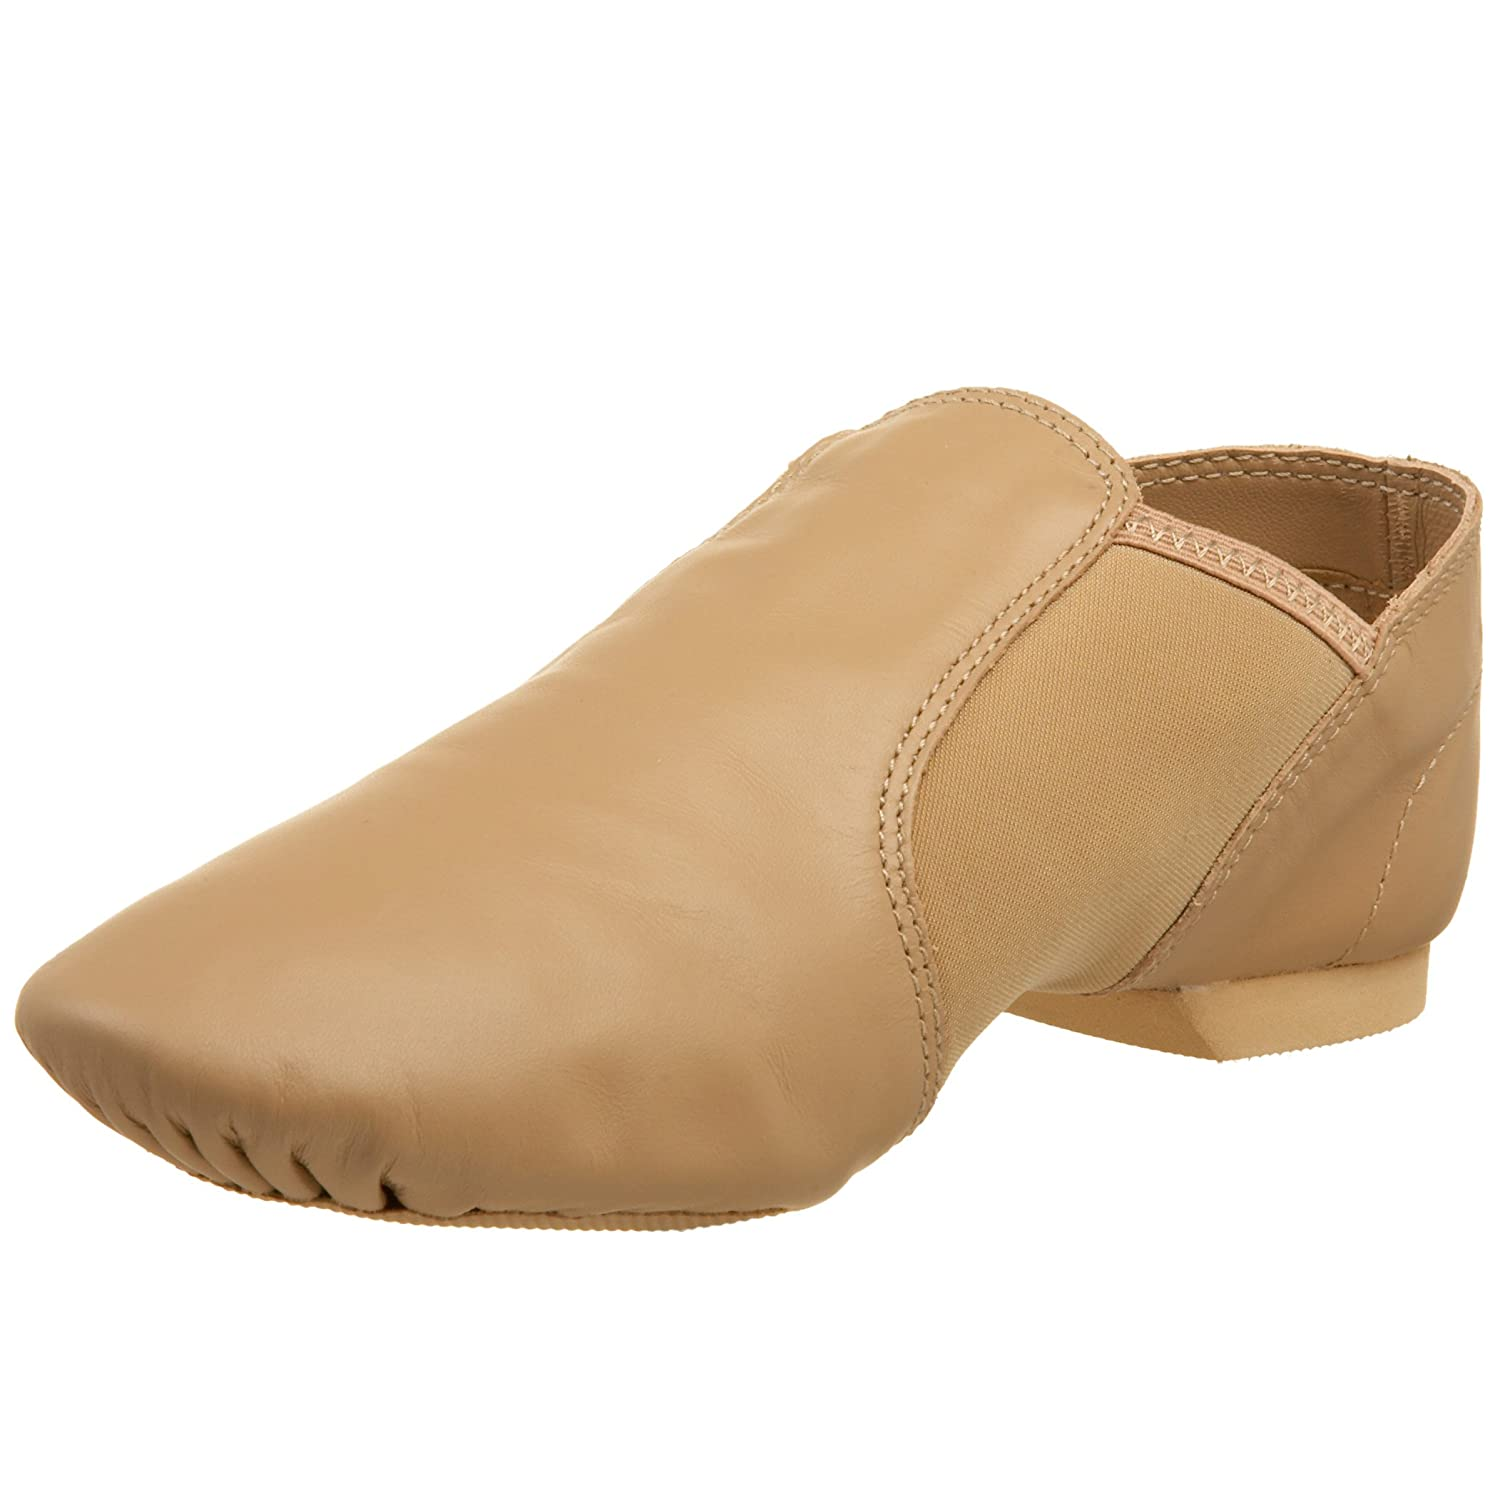 Capezio Women's EJ2 E-Series Jazz Slip-On B001A7PG88 9.5  W US|Caramel